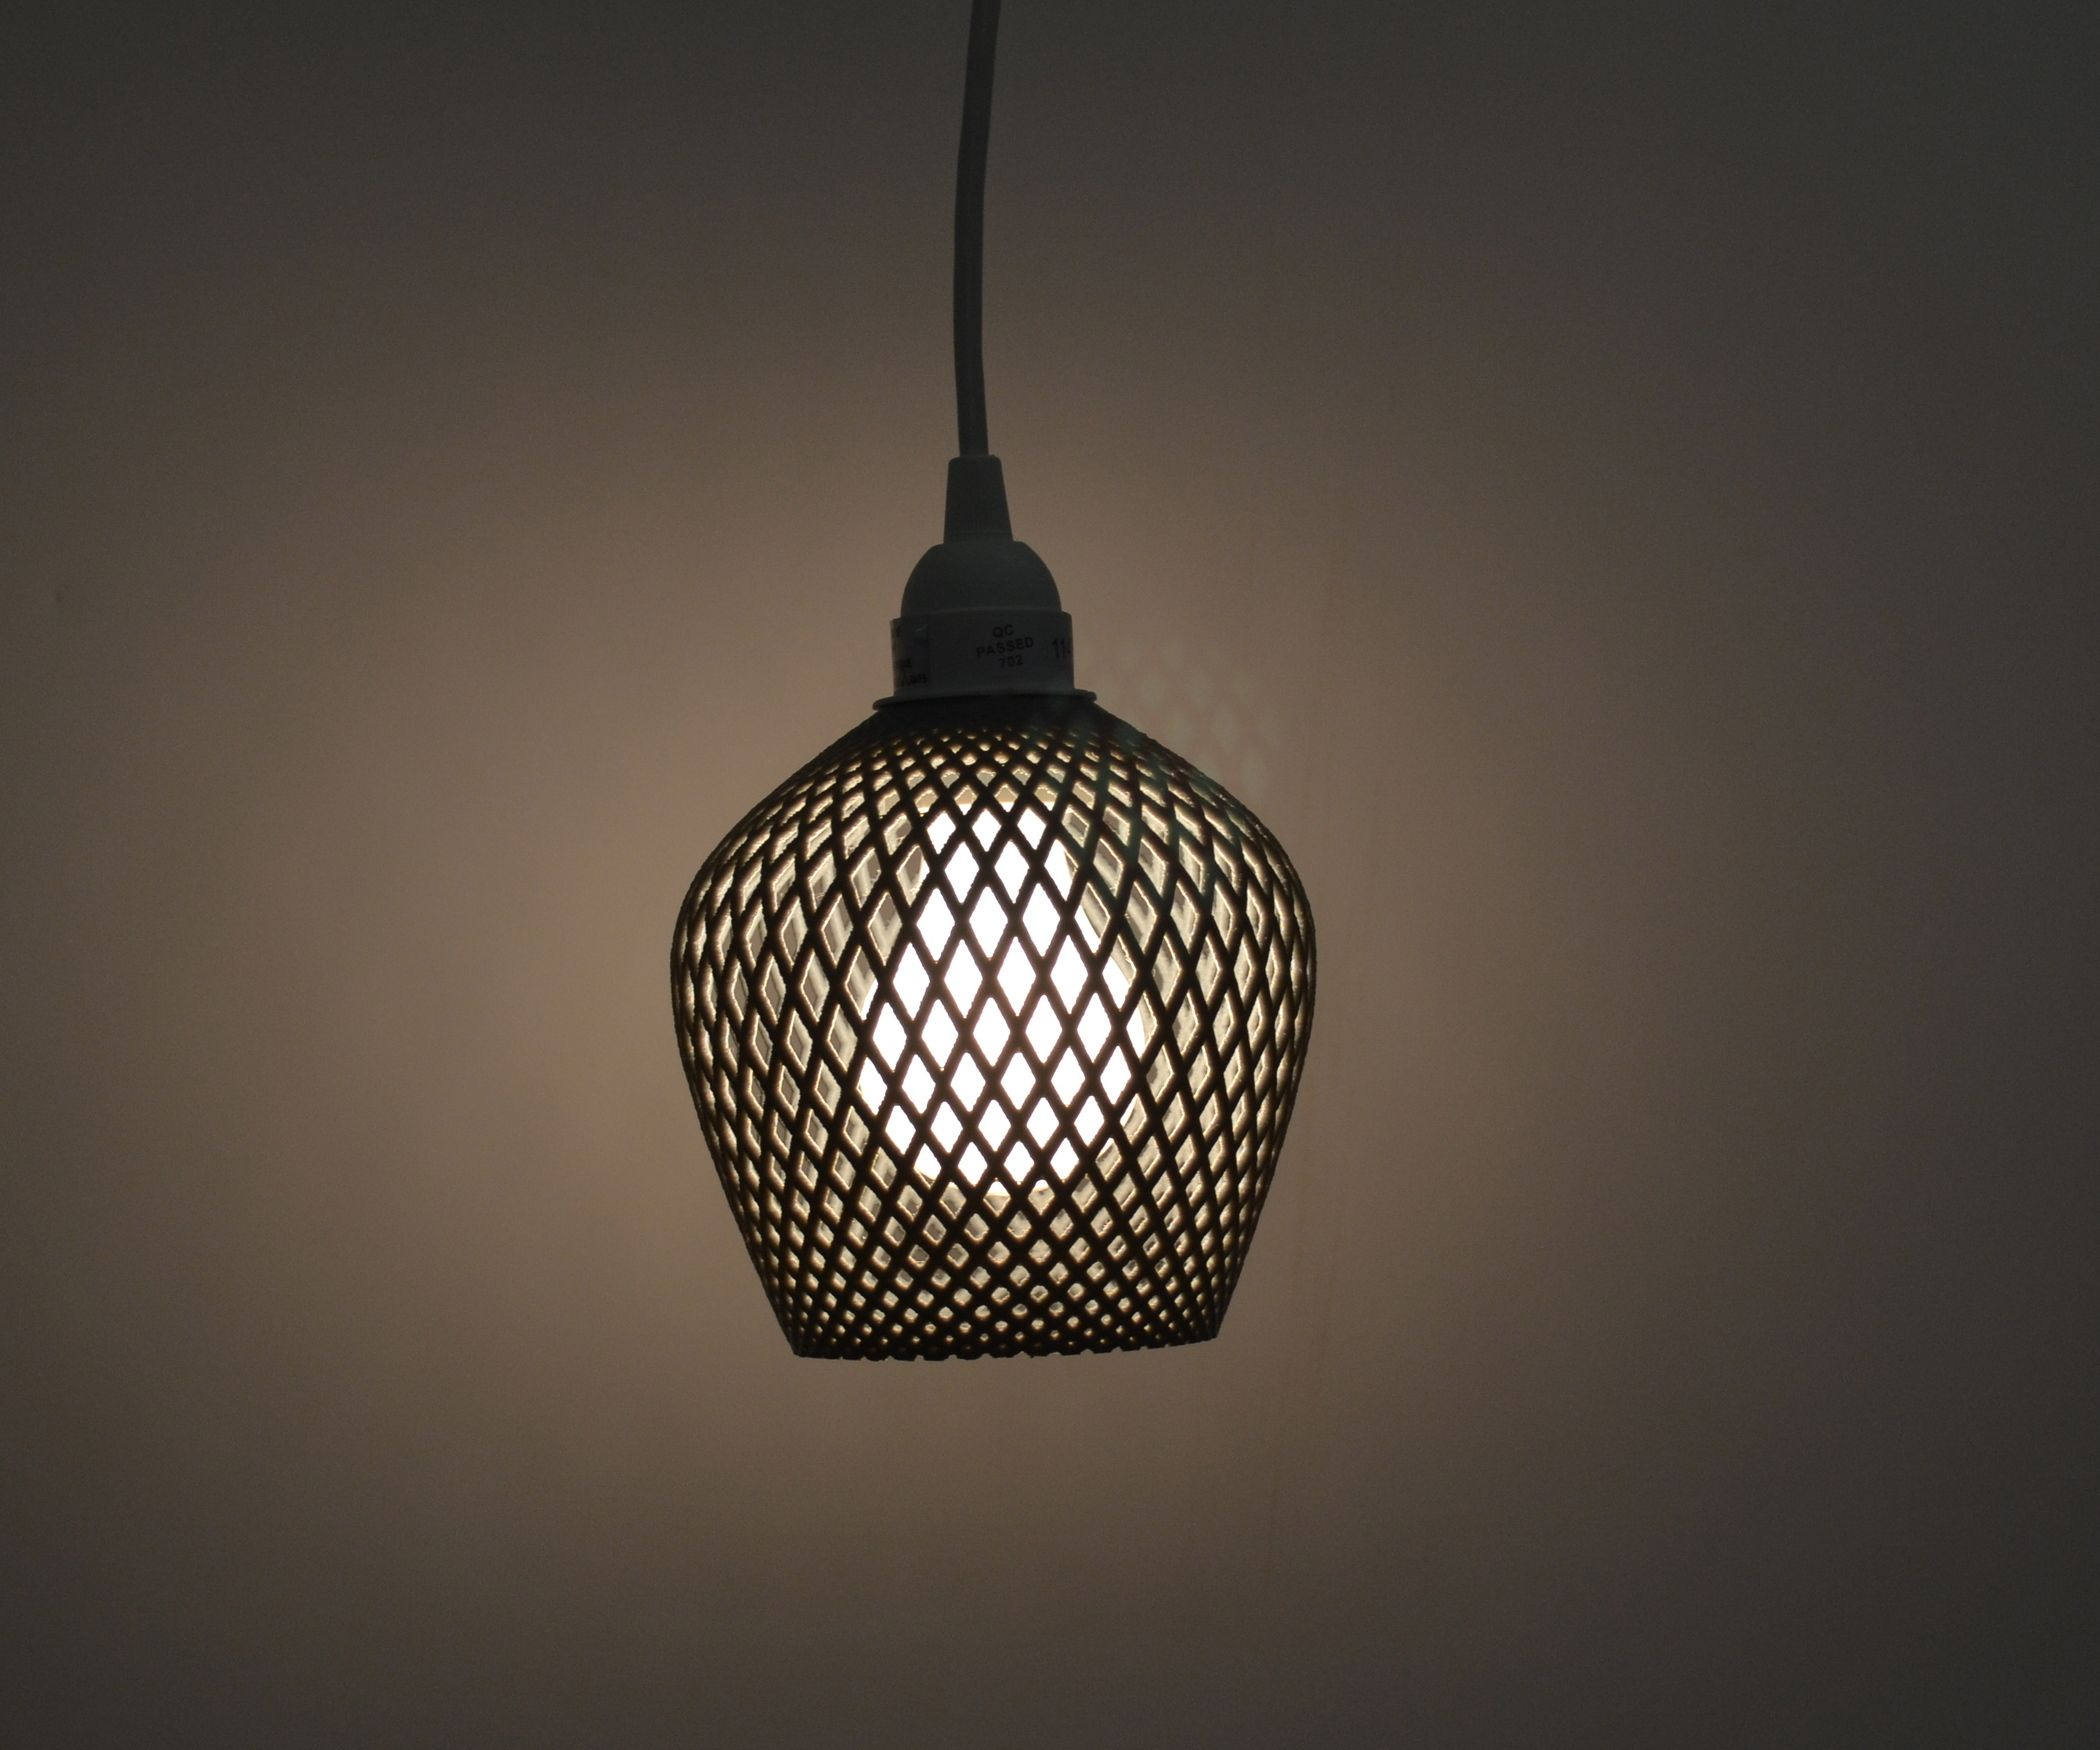 3d Printed Lamps By Samuel Bernier Project Re Lamp Light 3d Printing